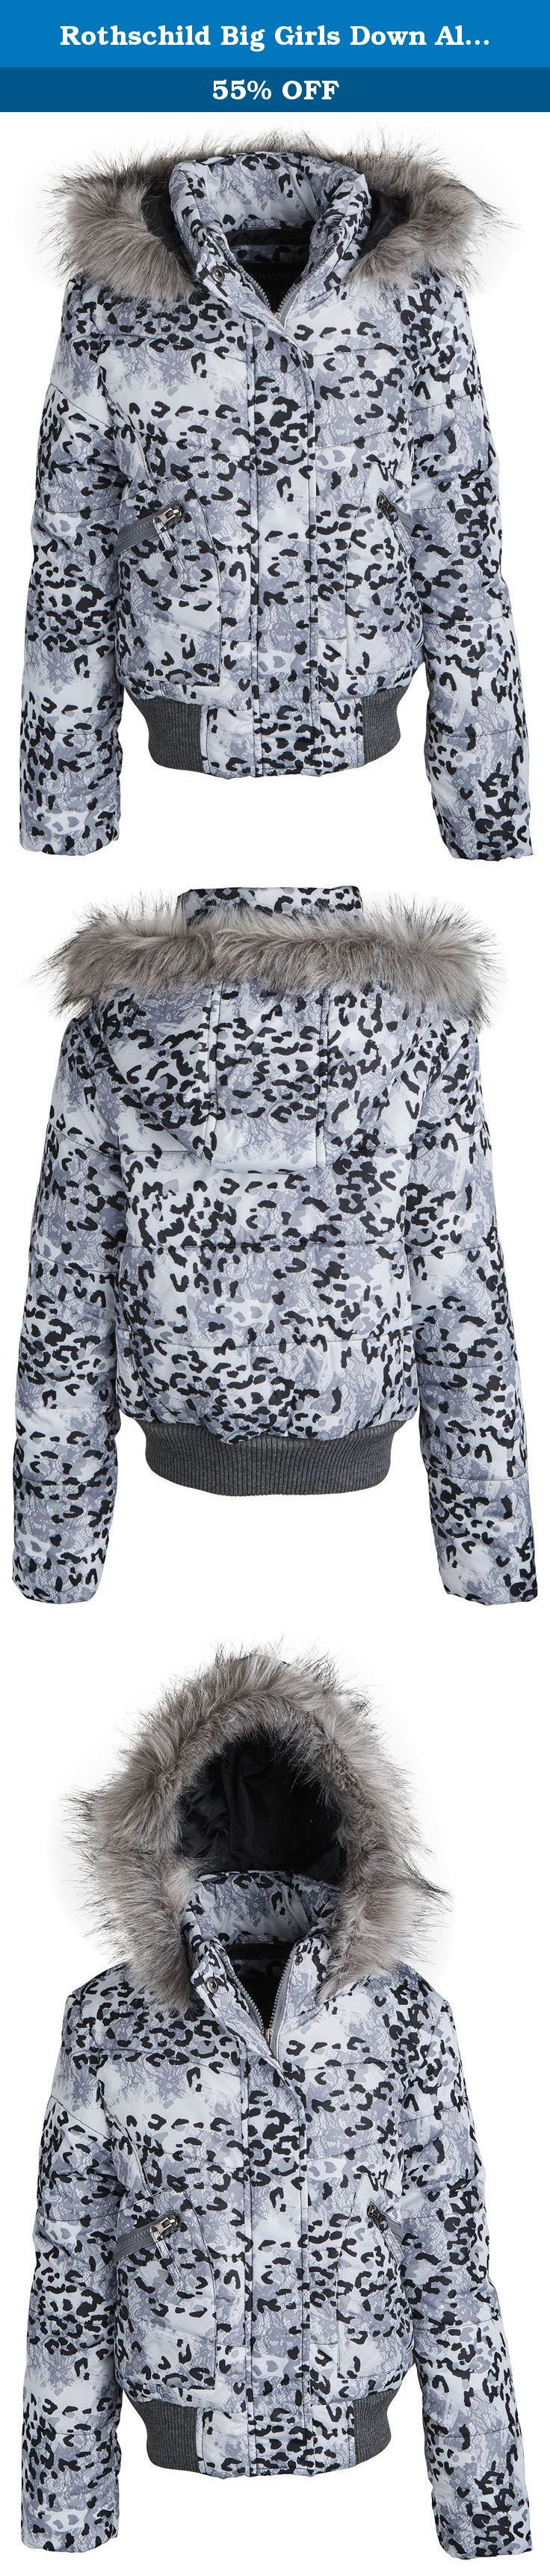 Rothschild Big Girls Down Alternative Hooded Winter Puffer Bubble Jacket Coat - Grey Lace (size 7/8). Bundle up your little angel in this lovely bubble jacket by Rothschild. Snugly fitted ribbed hem trim along with its faux fur trimmed hood and thick filling will definitely help her cope those extreme weathers. All over designer leopard lace print and front patch pockets will surely please moms and daughters taste alike. Available in sizes 7 to 16.